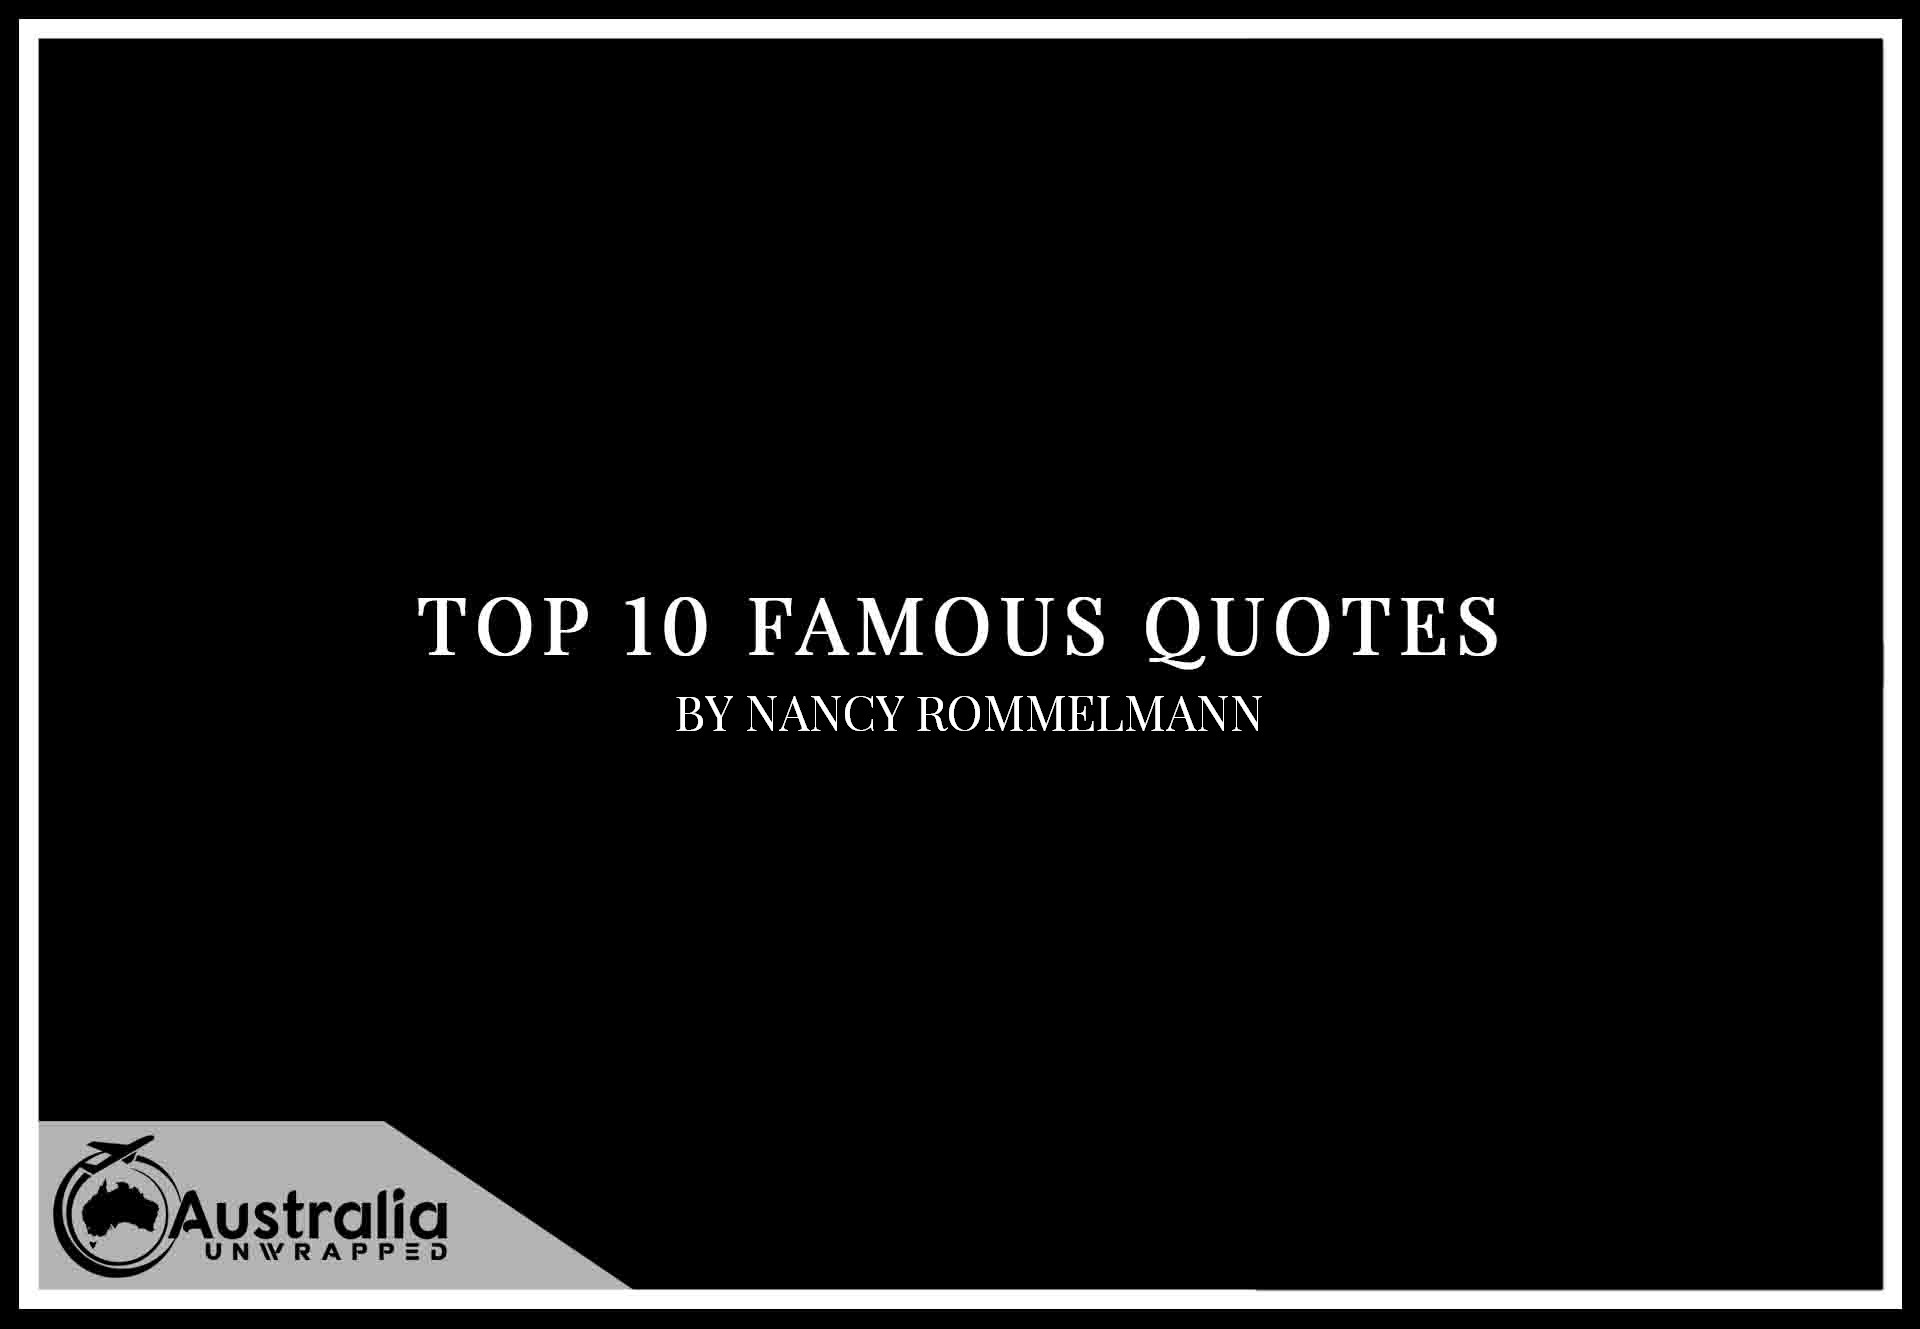 Top 10 Famous Quotes by Author Nancy Rommelmann